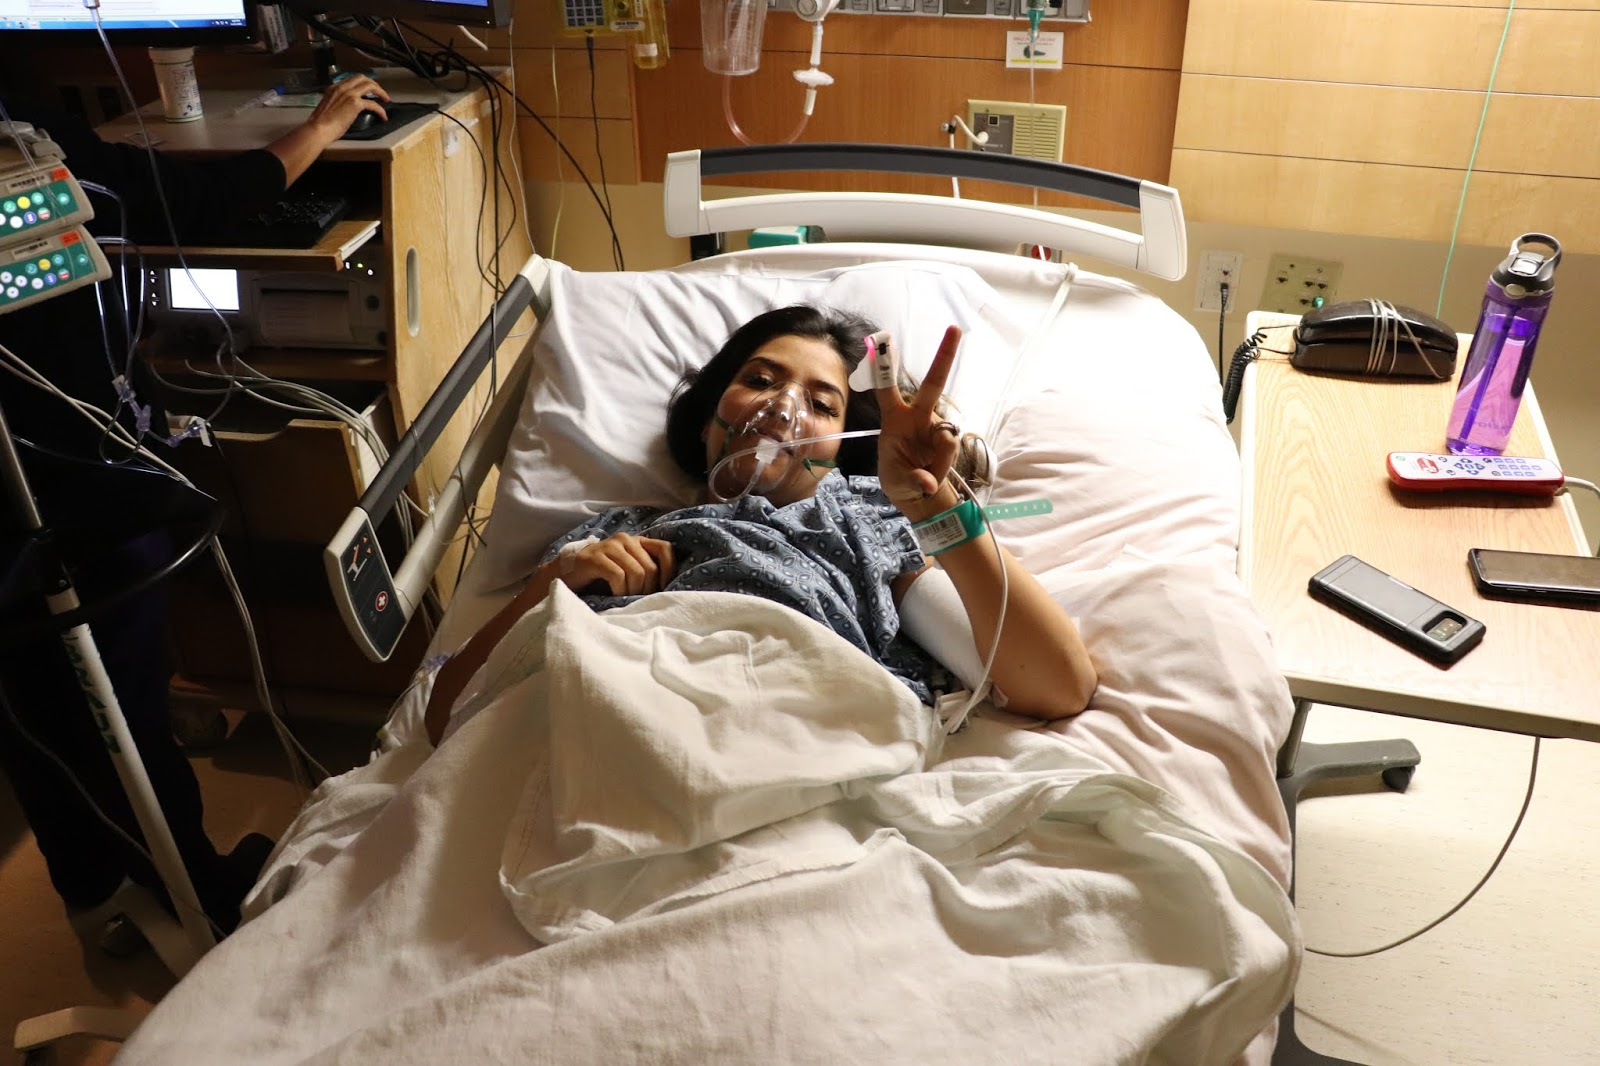 peace_sign_while_in_hospital_bed_with_oxygen_mask